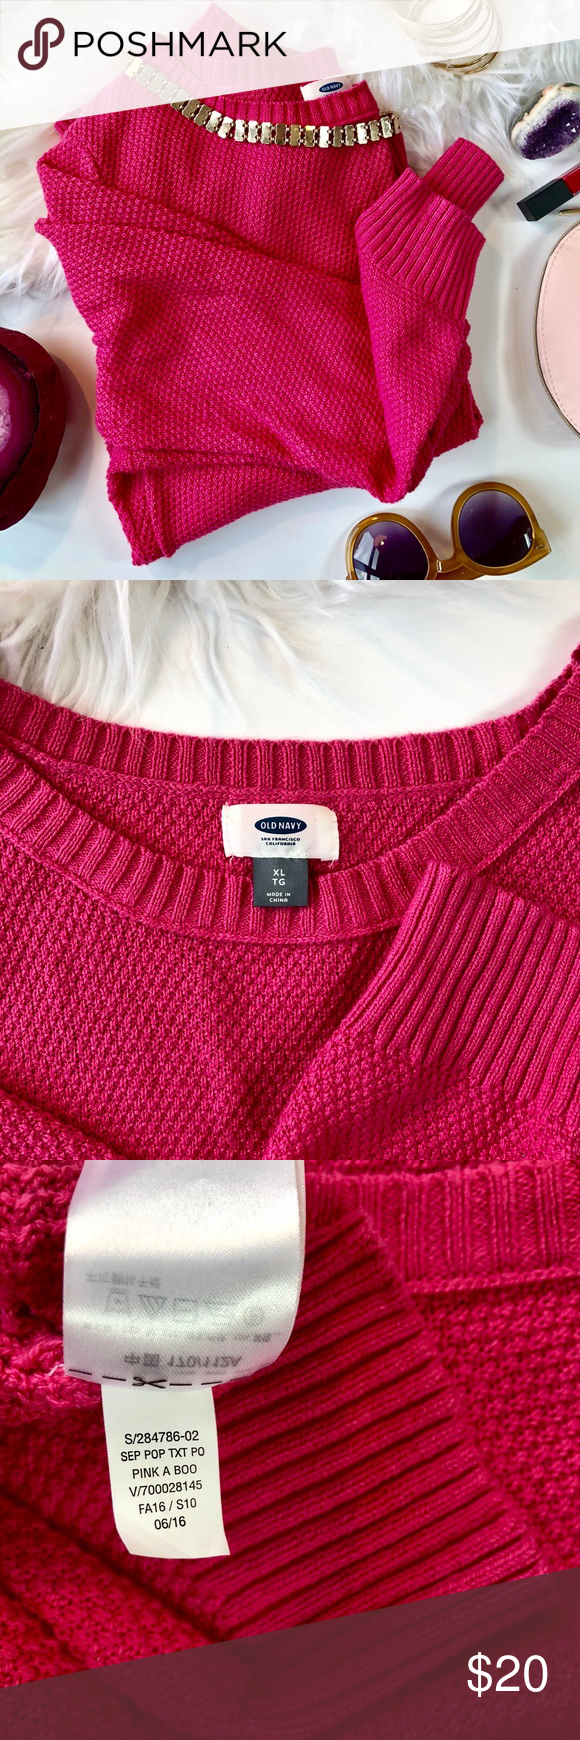 Old Navy Pink Chunky Knit Sweater - Size XL (EUC) Old Navy Pink Chunky Knit Sweater, Size XL. Perfect condition, worn once. This sweater fits on the slouchier side, and is soft & comfortable. Pair with distressed skinny jeans and booties for a sweet look with a pop of color! Old Navy Sweaters Crew & Scoop Necks